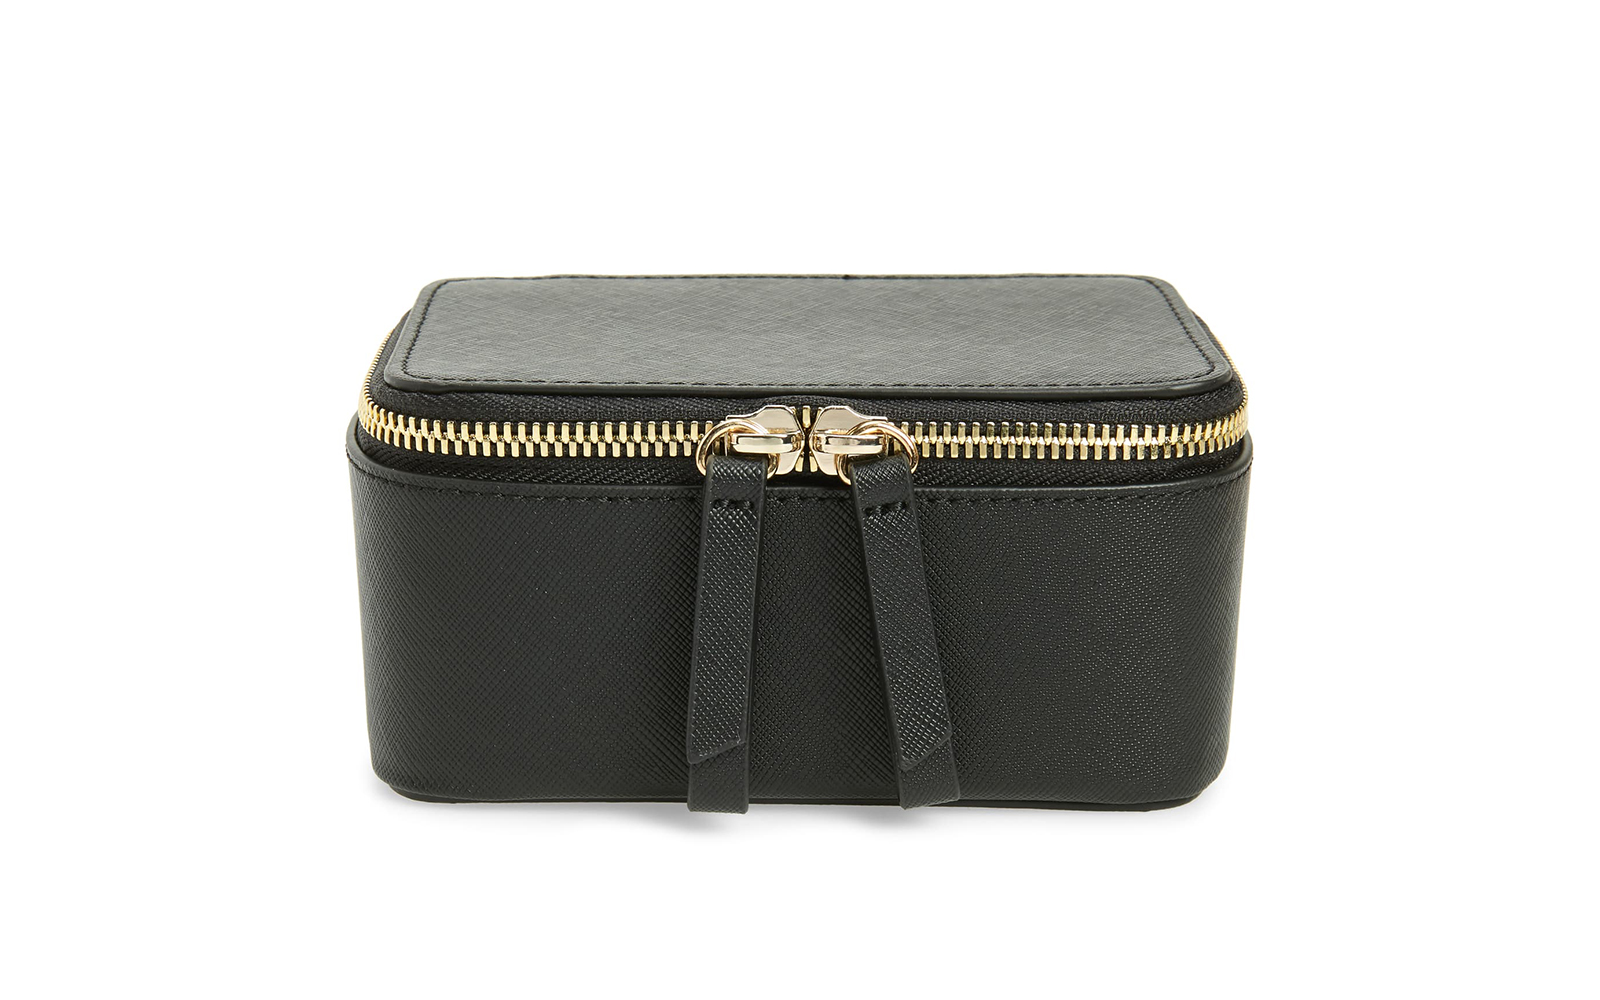 Truffle Privacy Mini Leather Jewelry Case